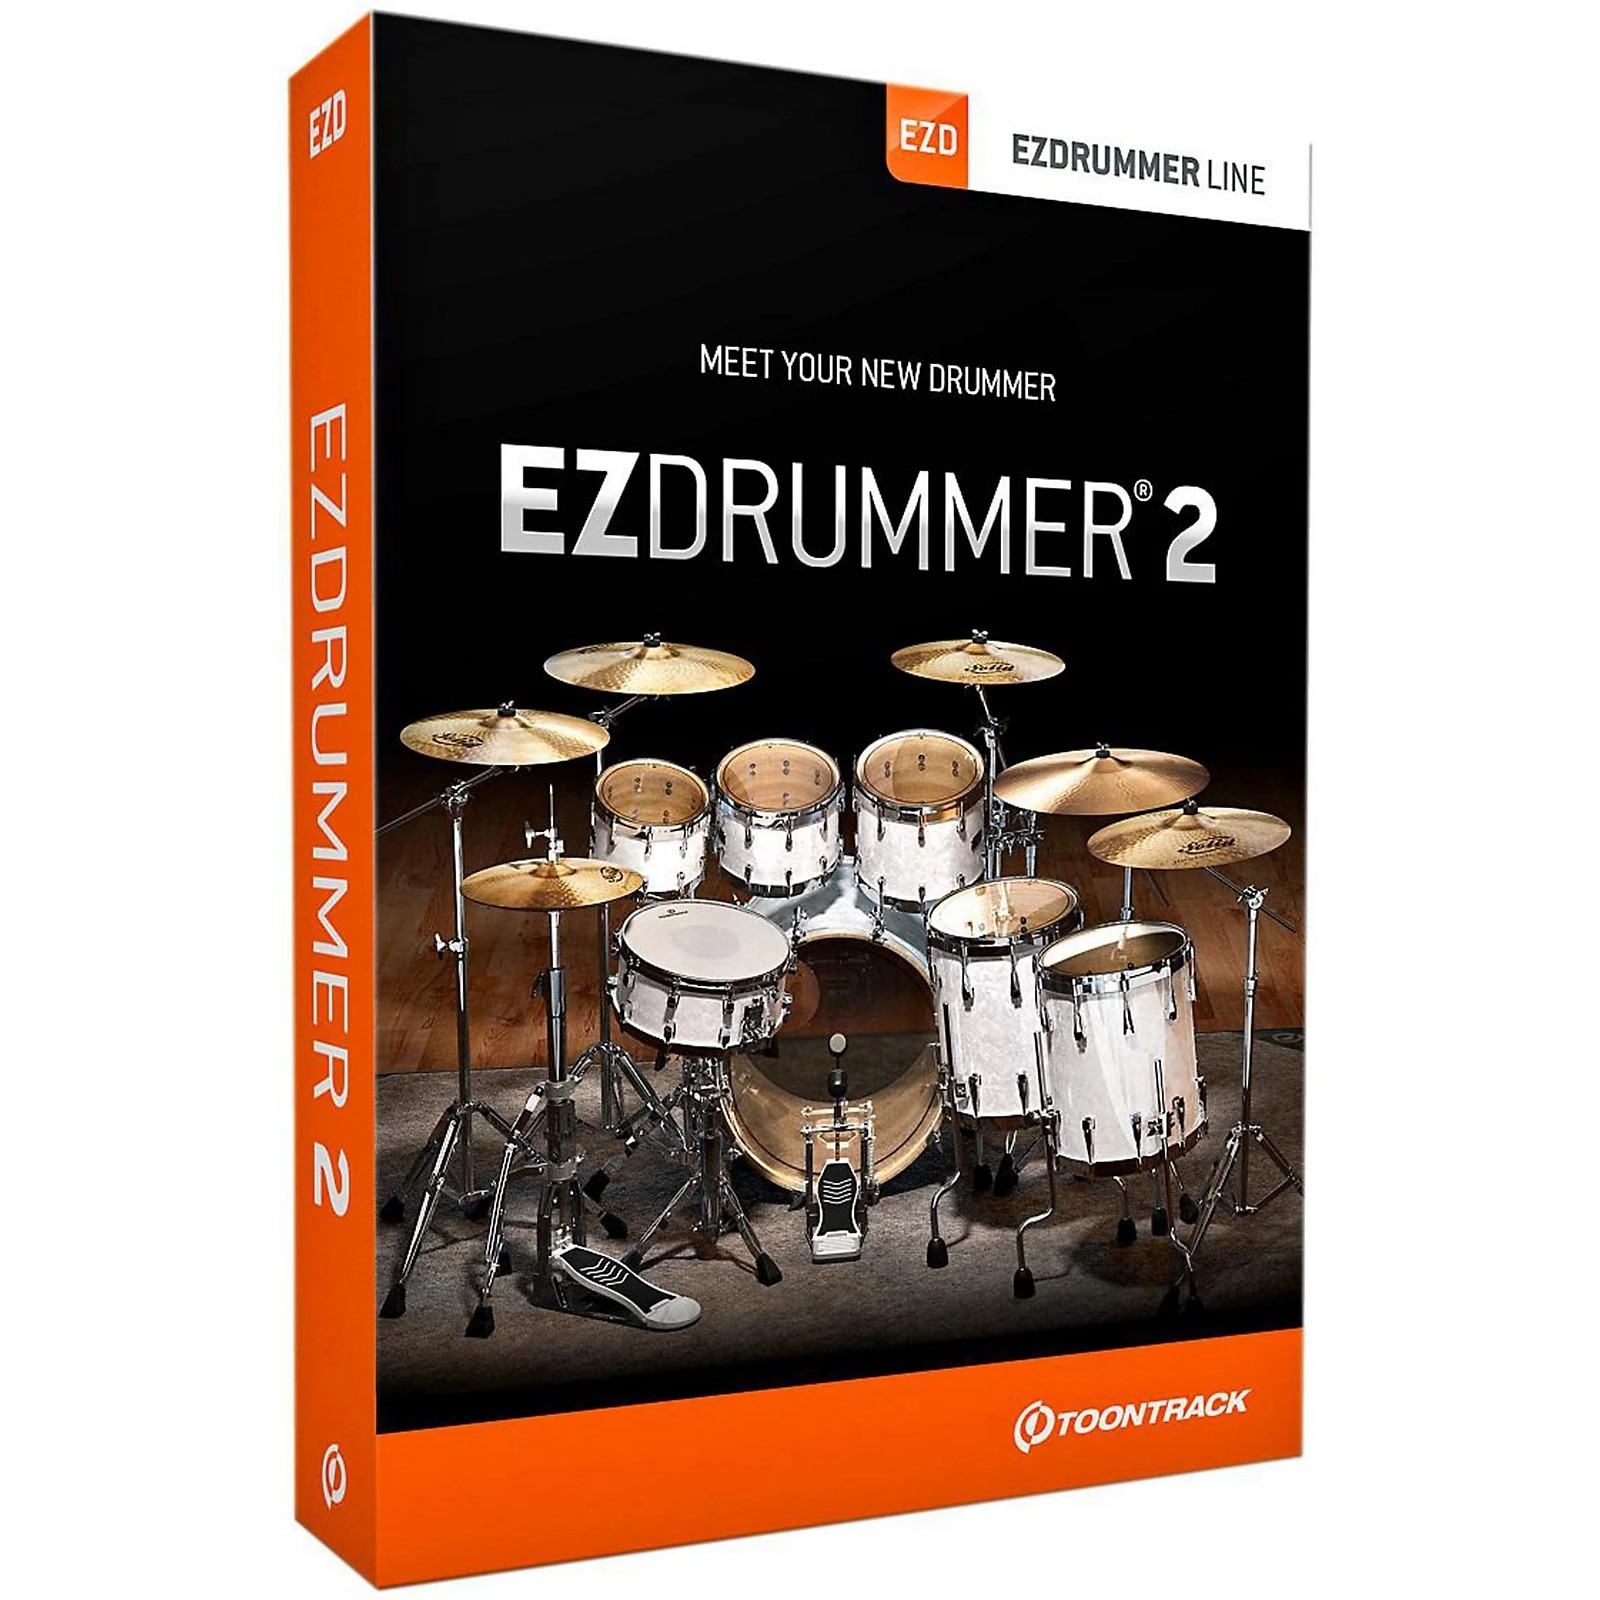 TOONTRACK EZDRUMMER 2 (2020) With ALL 44 EXPANSION PACKS - TOONTRACK